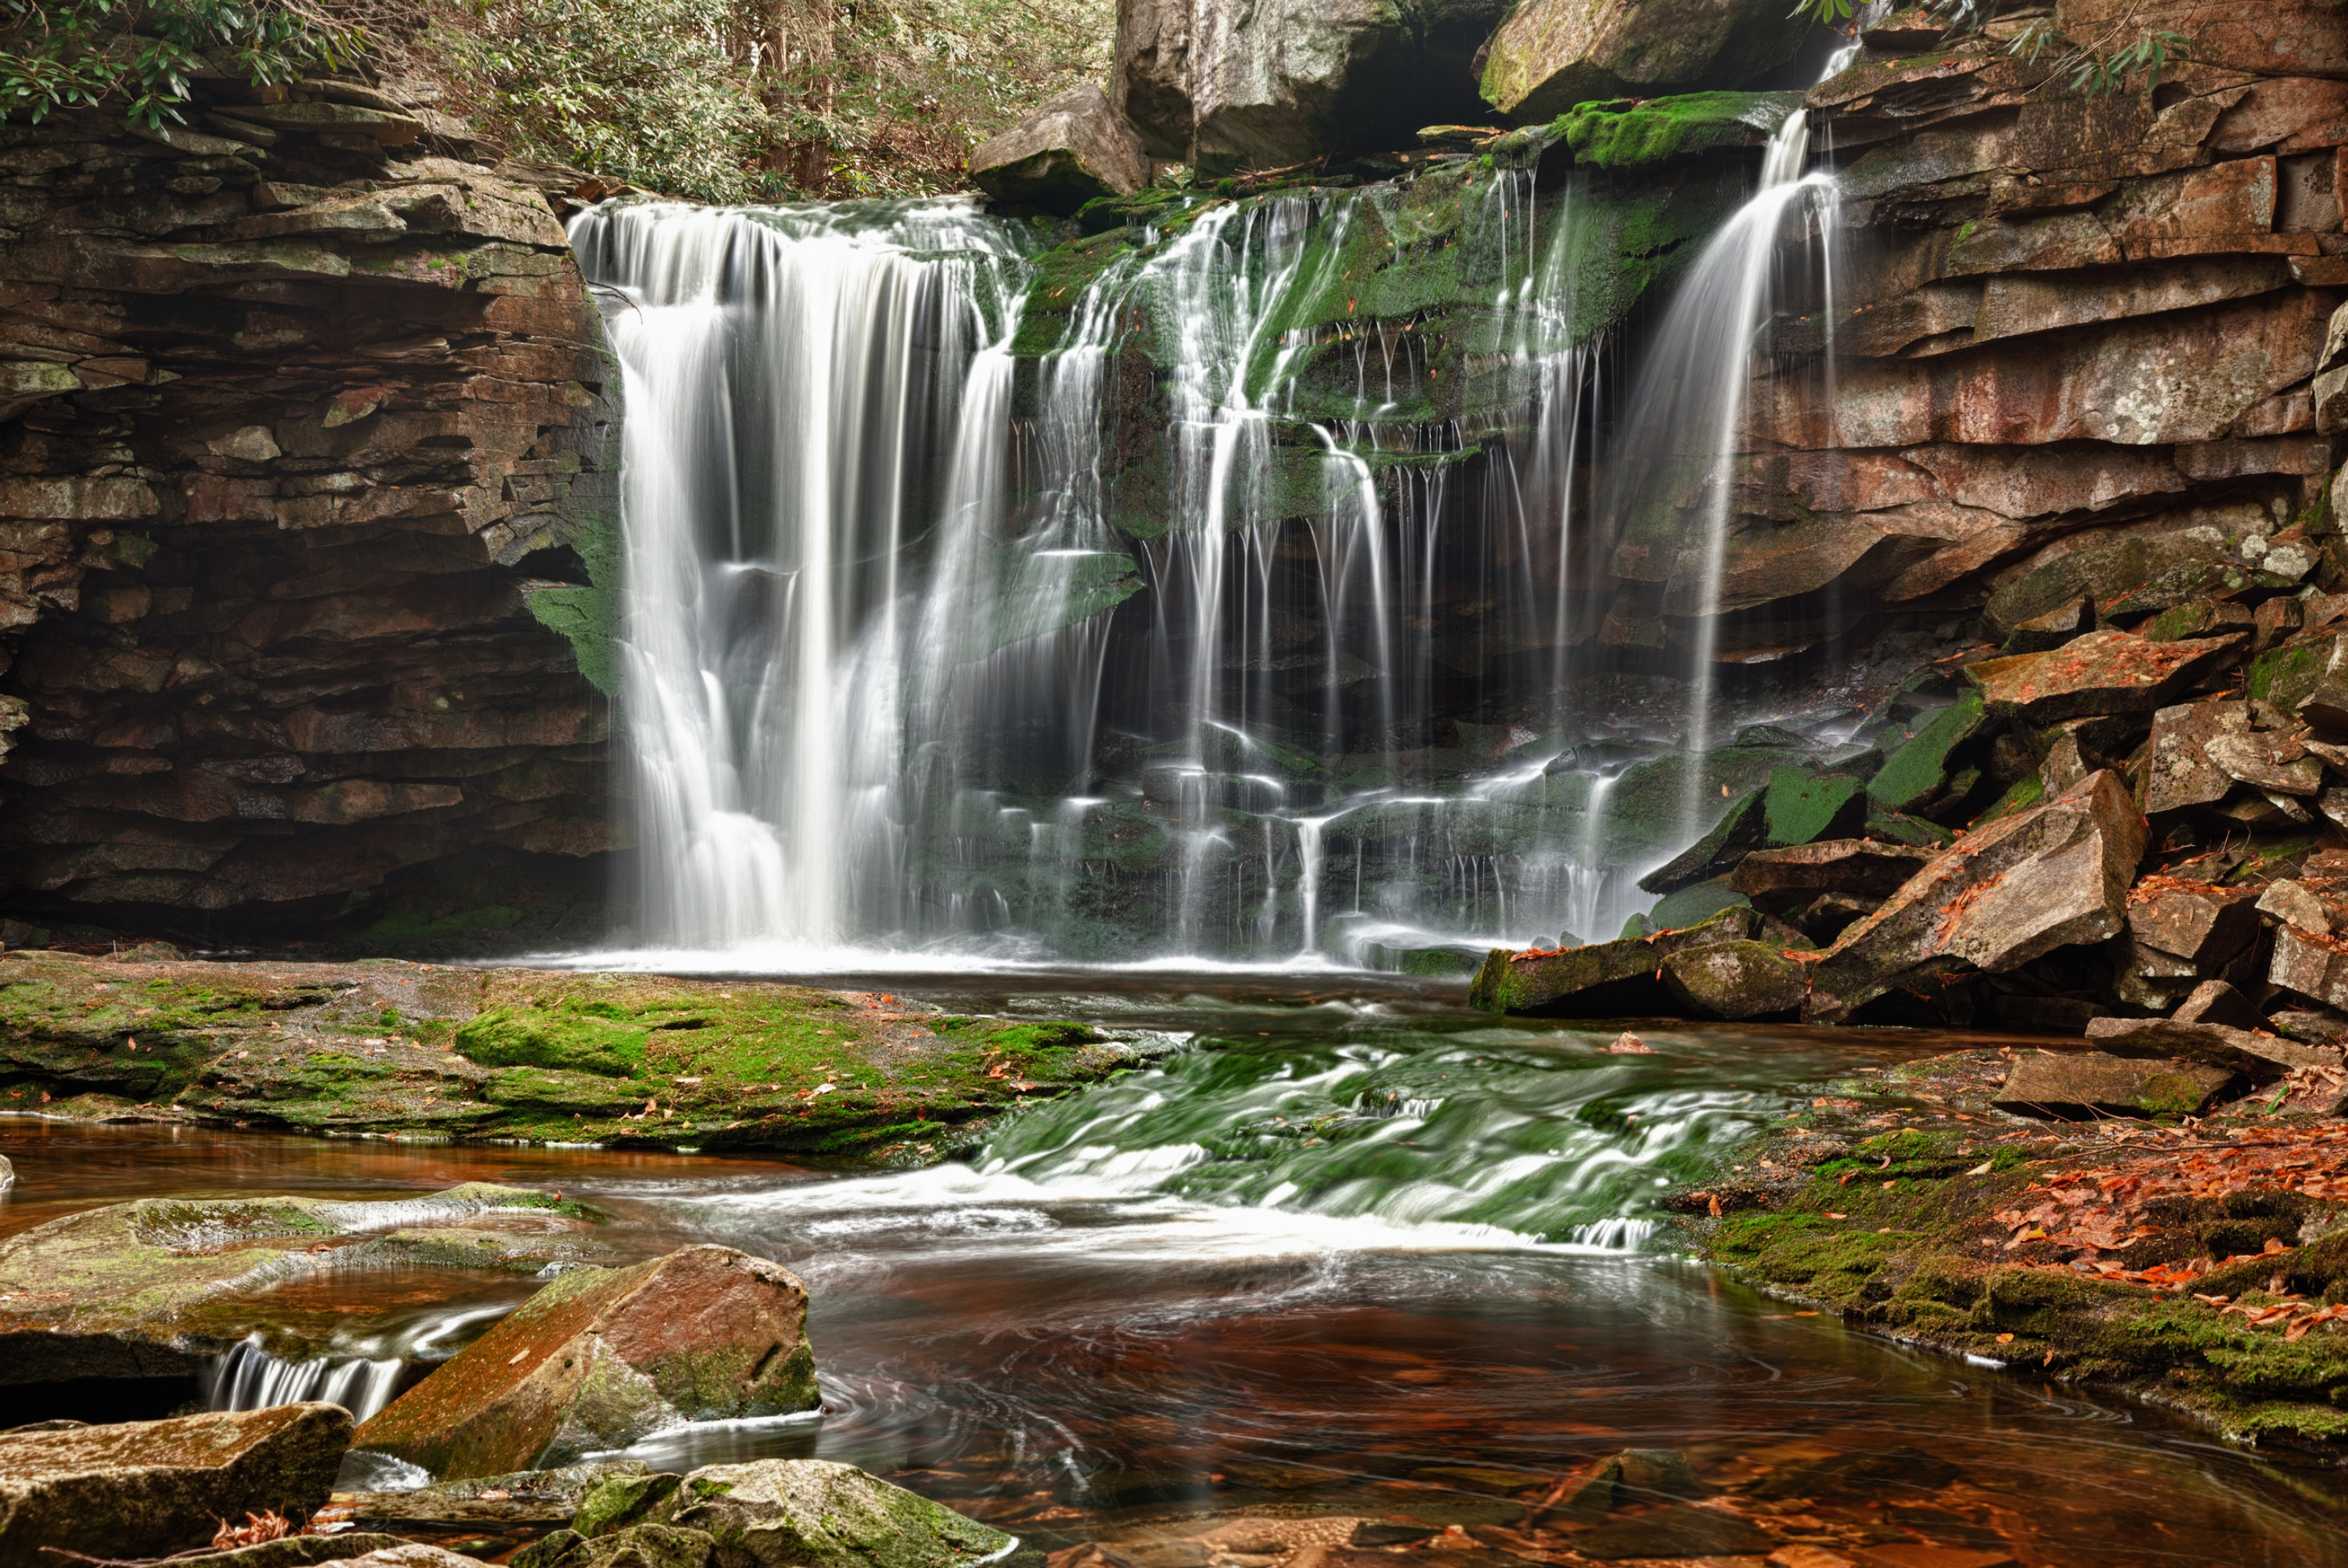 images?q=tbn:ANd9GcQh_l3eQ5xwiPy07kGEXjmjgmBKBRB7H2mRxCGhv1tFWg5c_mWT Great Best Vacation Destinations West Virginia Secret 2020 @capturingmomentsphotography.net